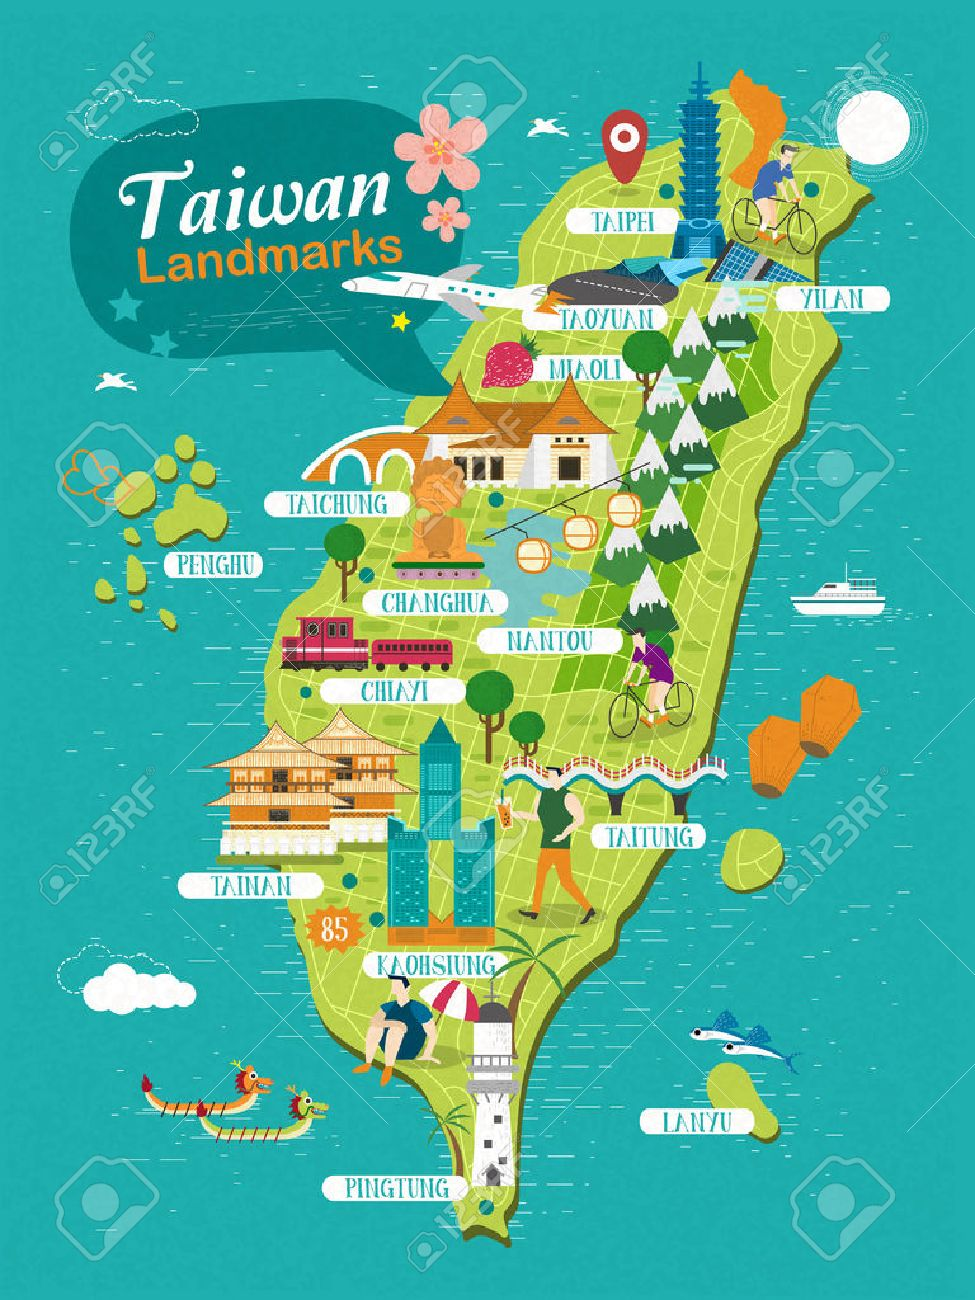 Taiwan Landmarks Travel Map In Flat Design Royalty Free Cliparts